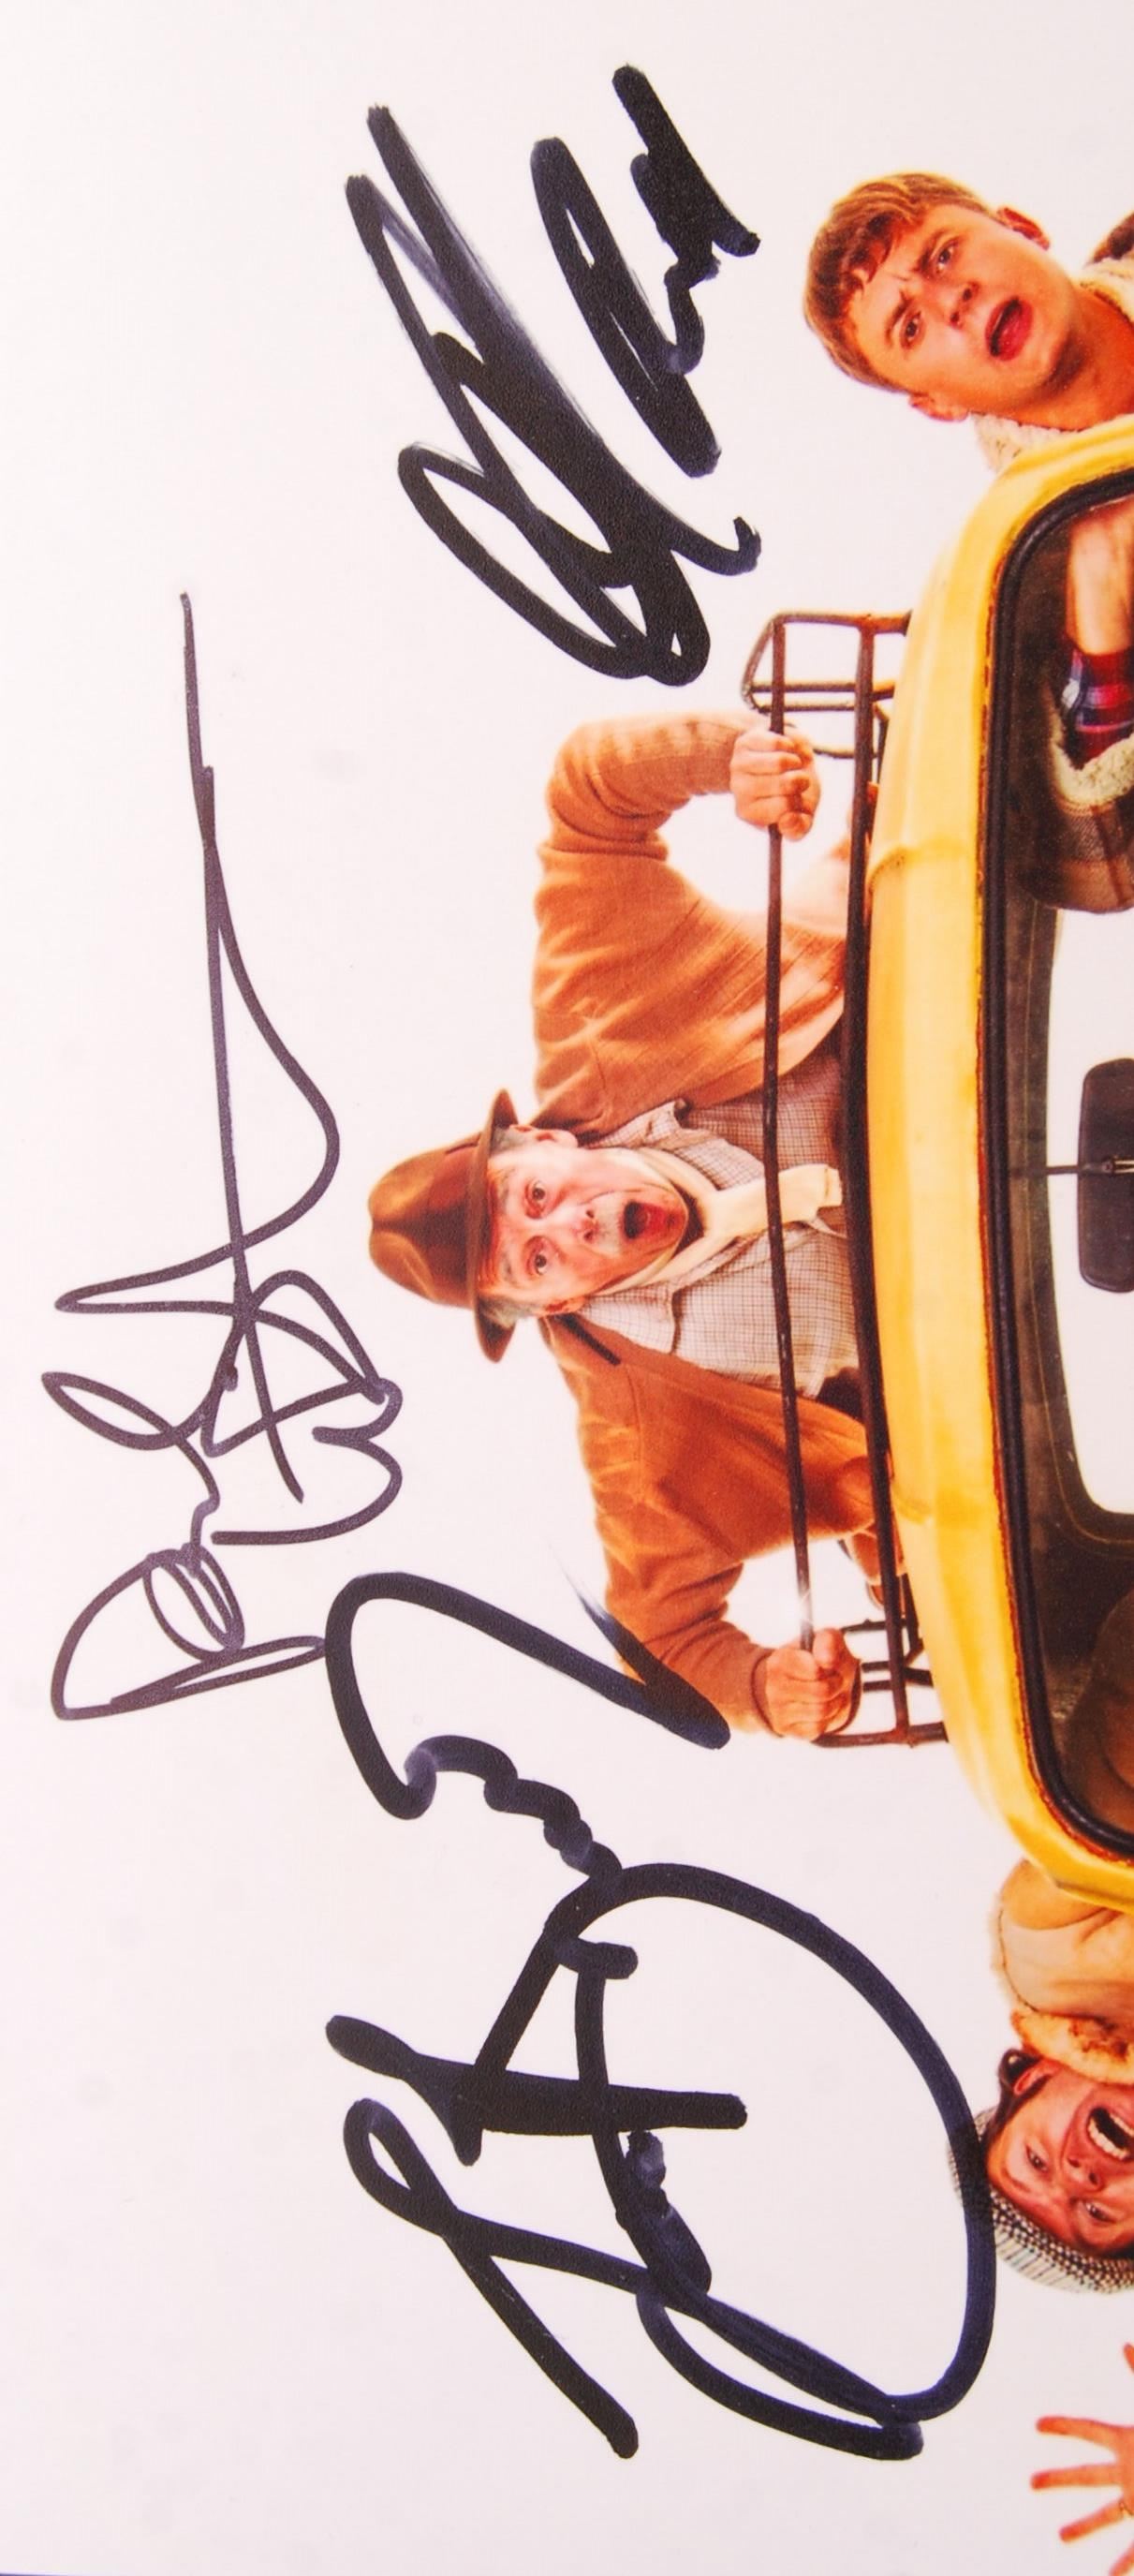 ONLY FOOLS & HORSES THE MUSICAL - CAST SIGNED PHOT - Image 2 of 2